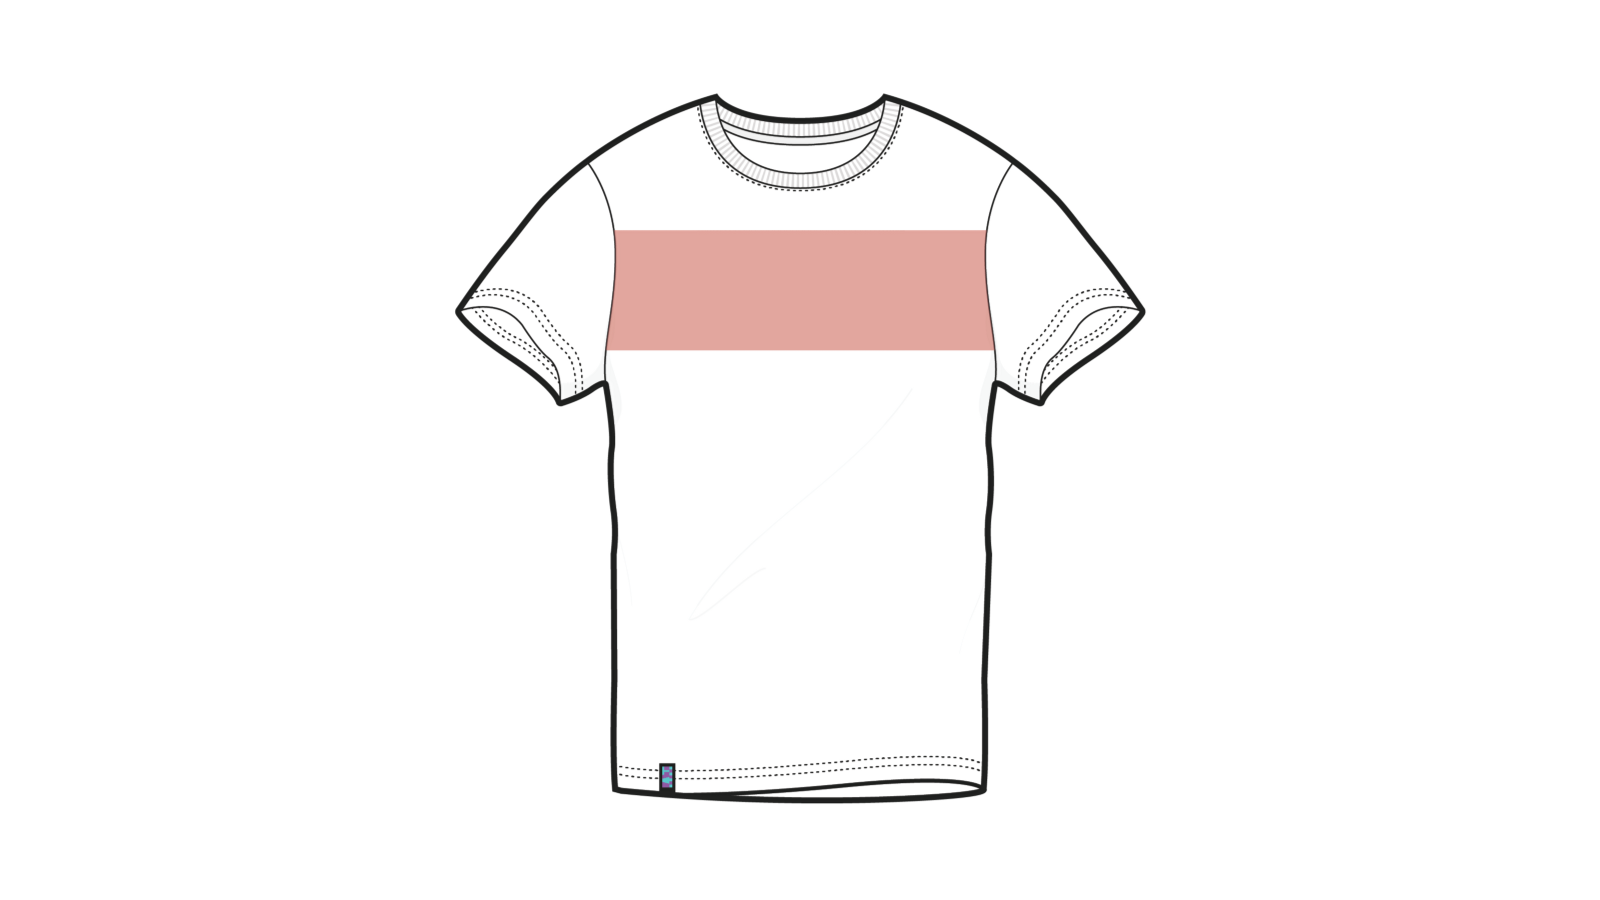 How To Optimize Your T Shirt Designs For Max Wearability